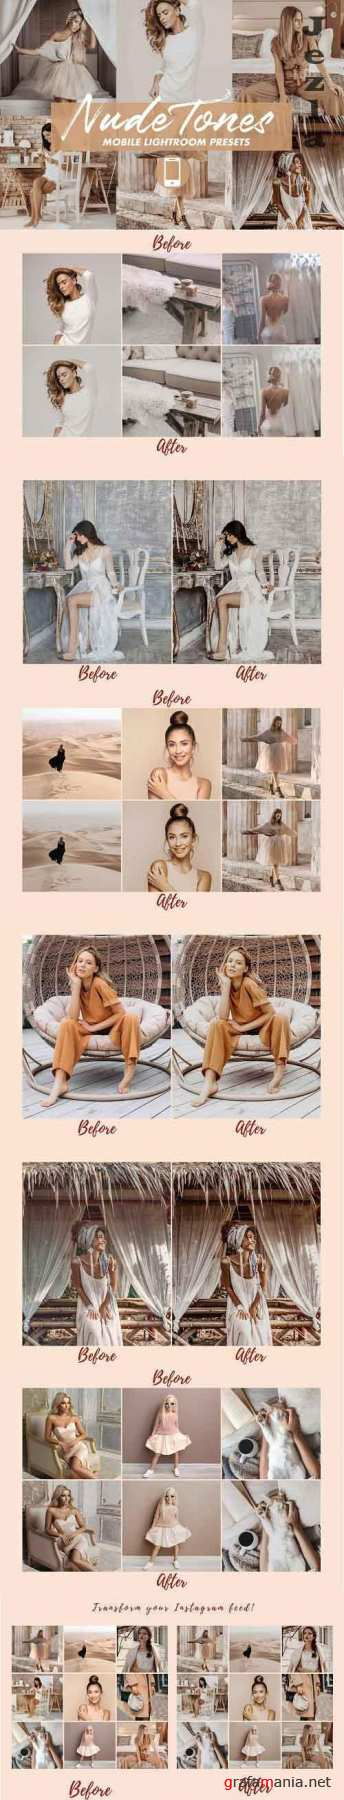 Mobile Lightroom Presets NUDE TONES 4841702